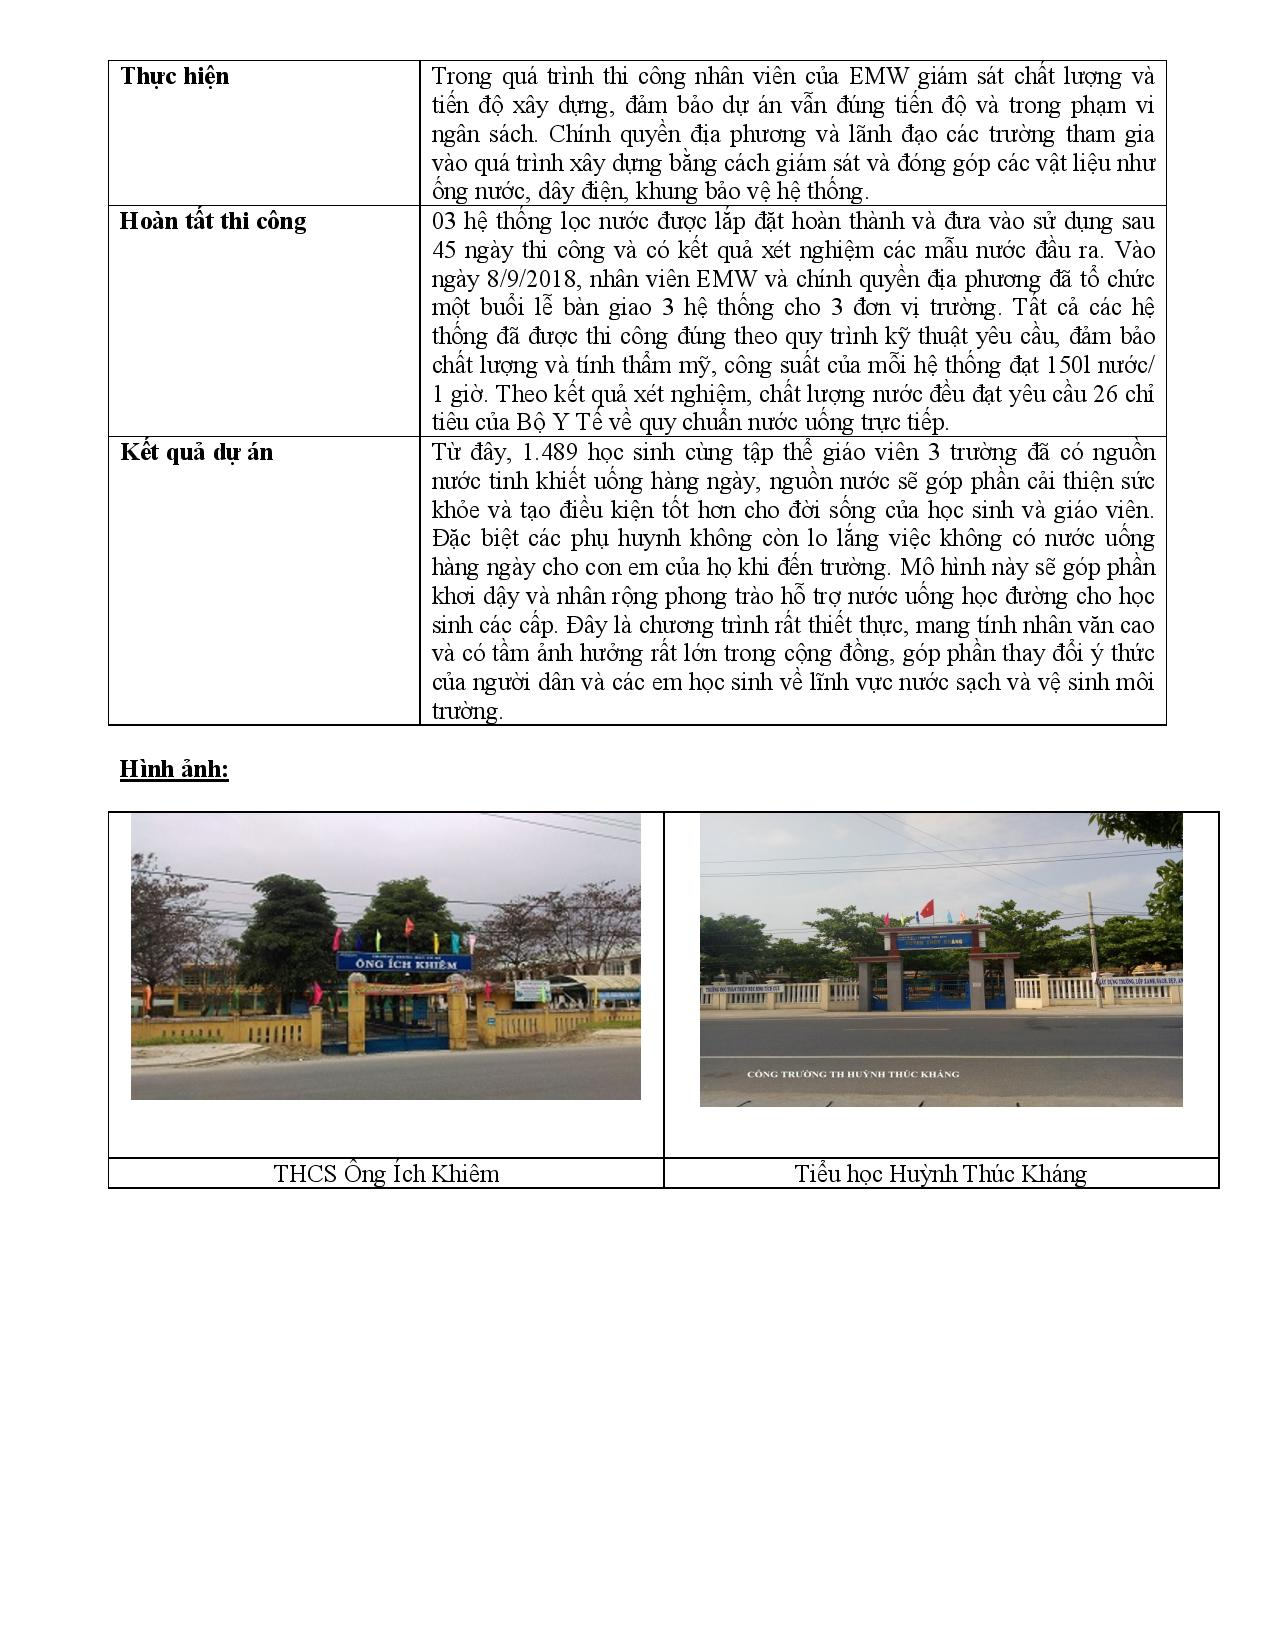 Final_Report_-_RO-UV_Dien_Hong_Dien_Ban_Quang_Nam-page-002